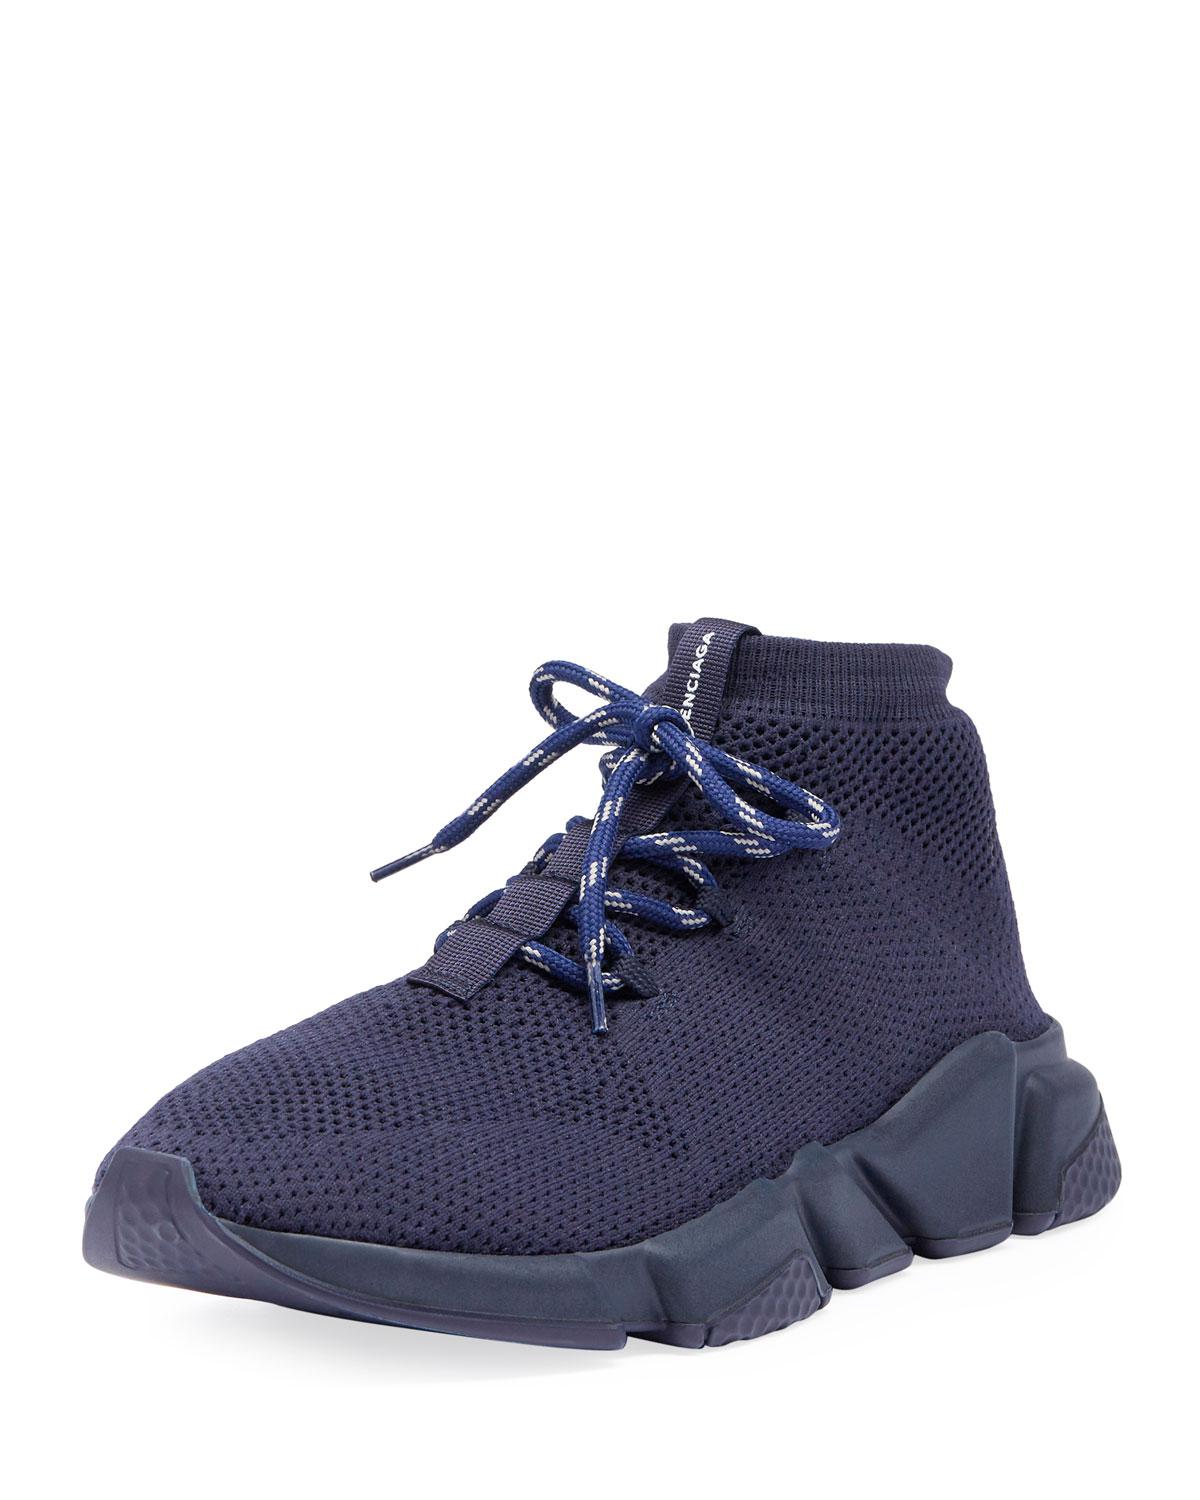 f75ef2d91593e Lyst - Balenciaga Men s Speed Mesh Sneakers in Blue for Men - Save 3%